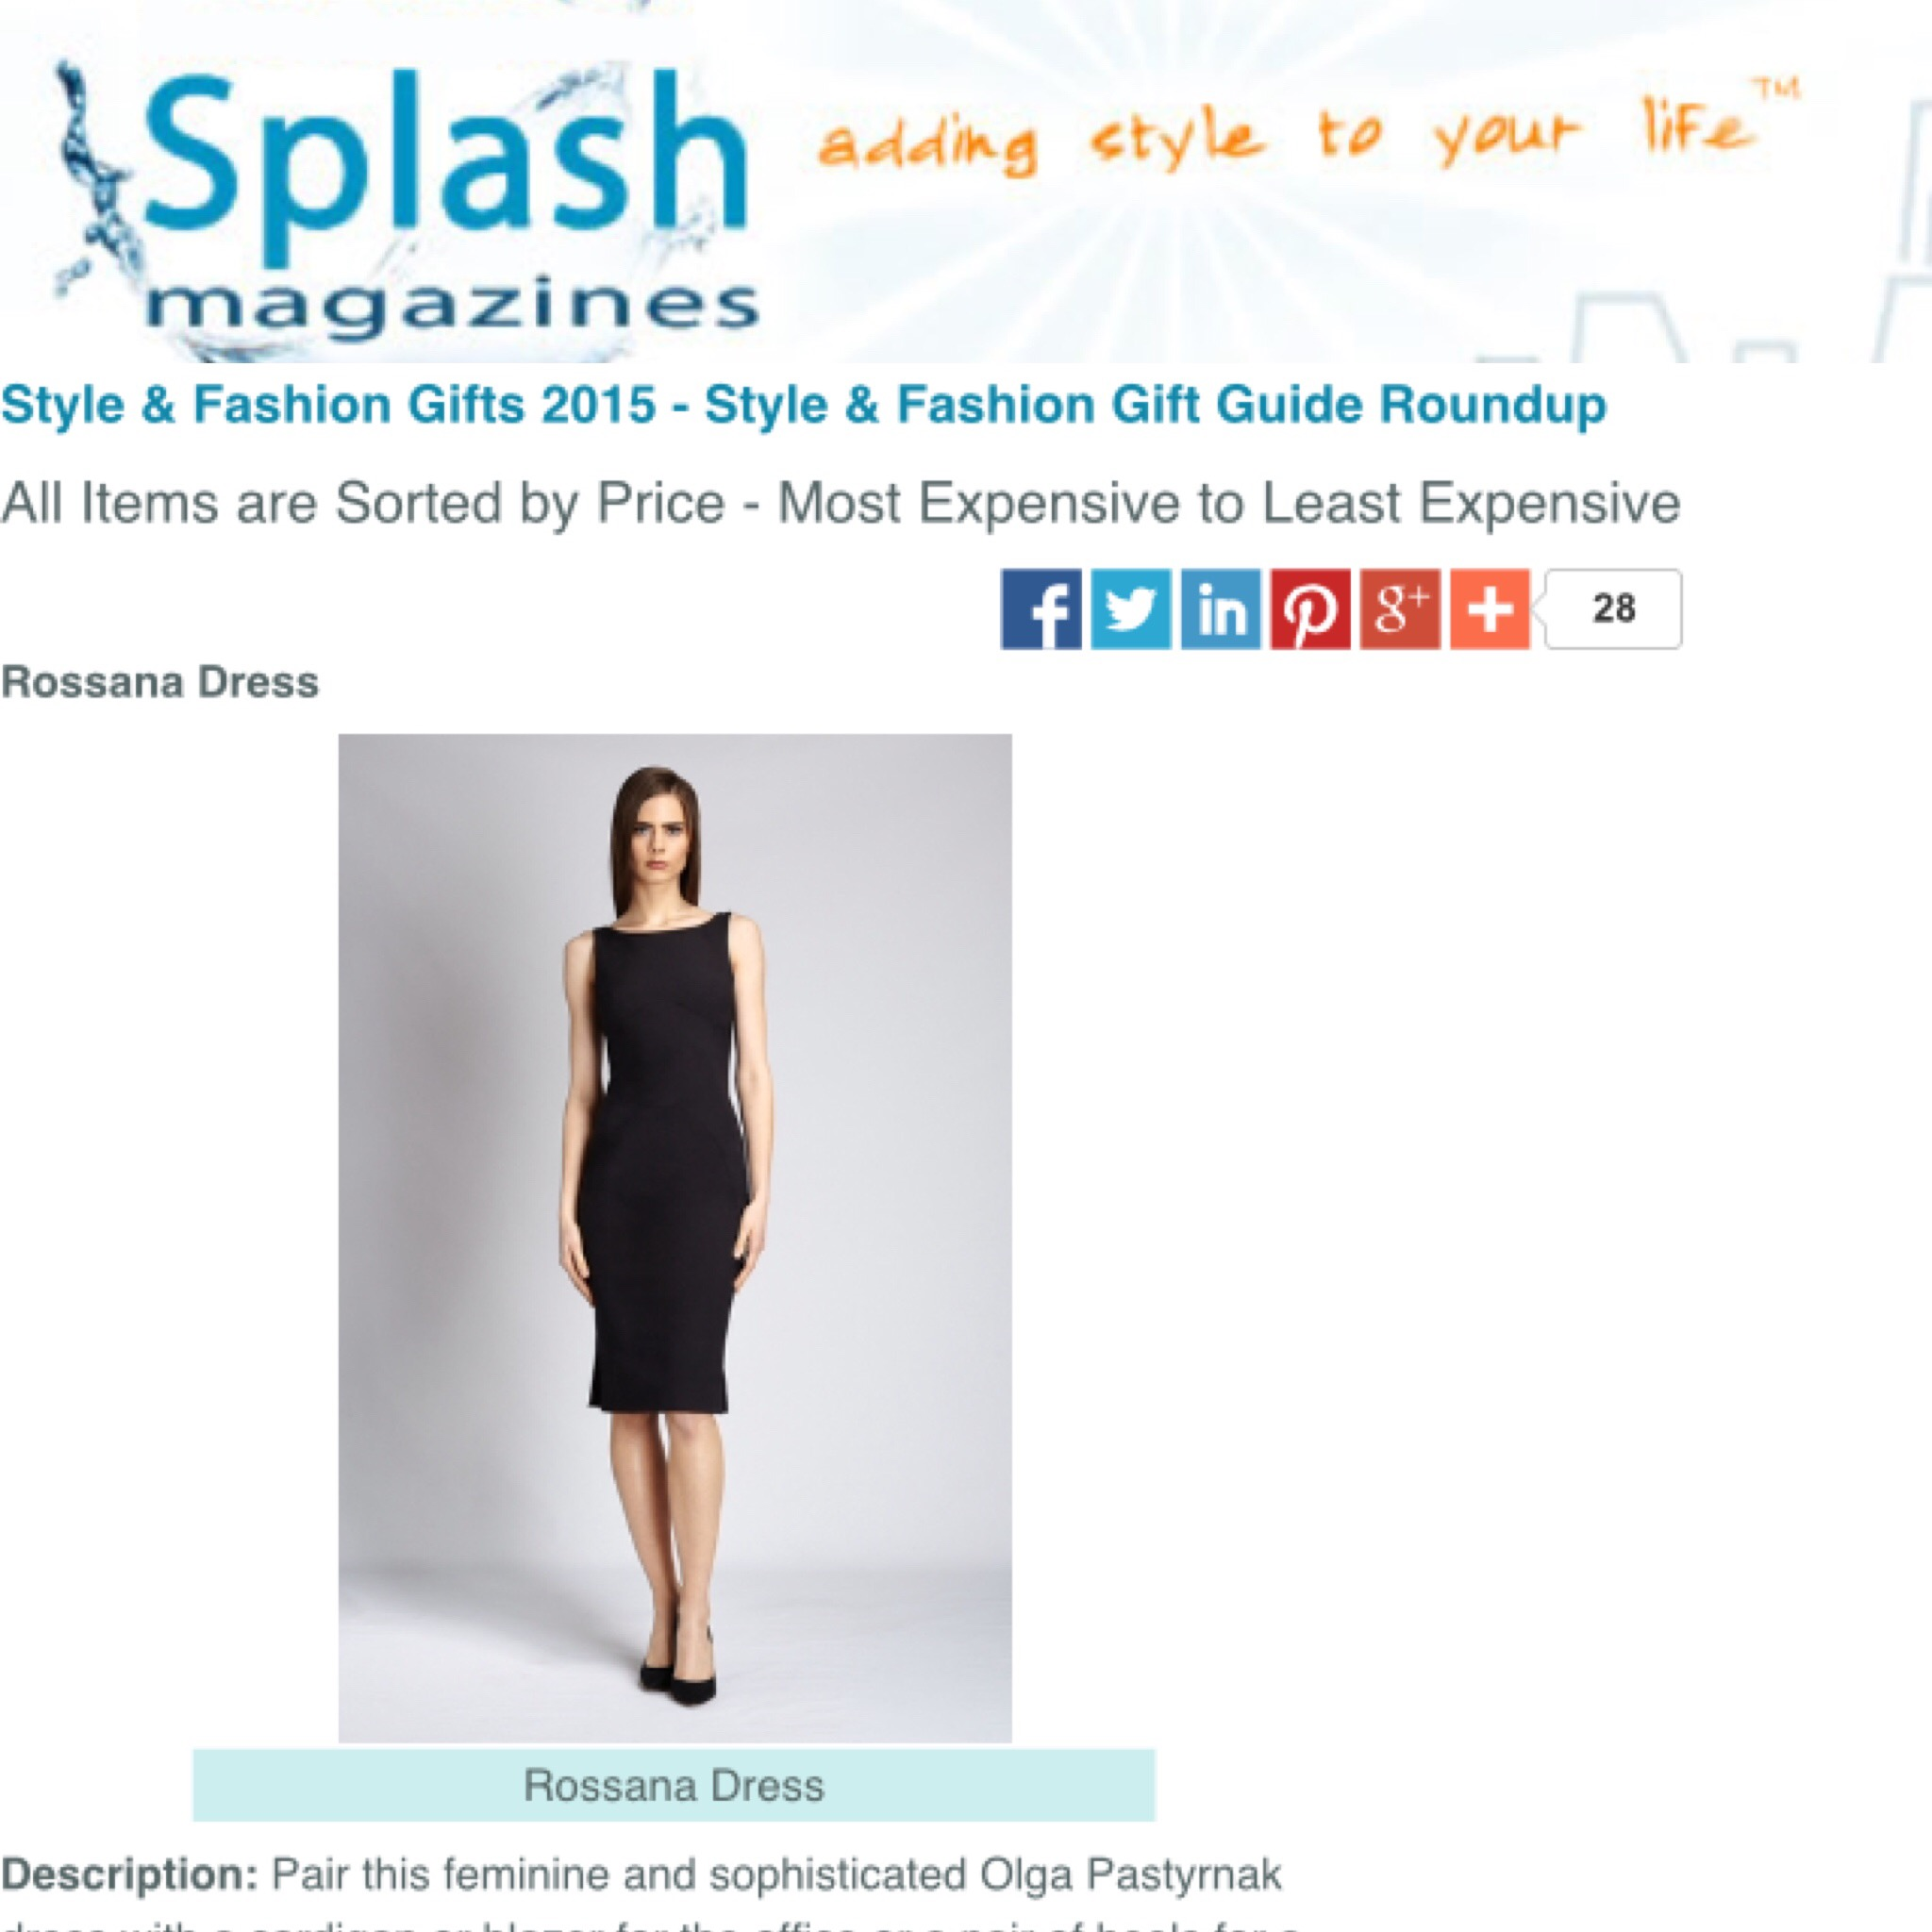 Splash Magazine Online, September 16, 2015